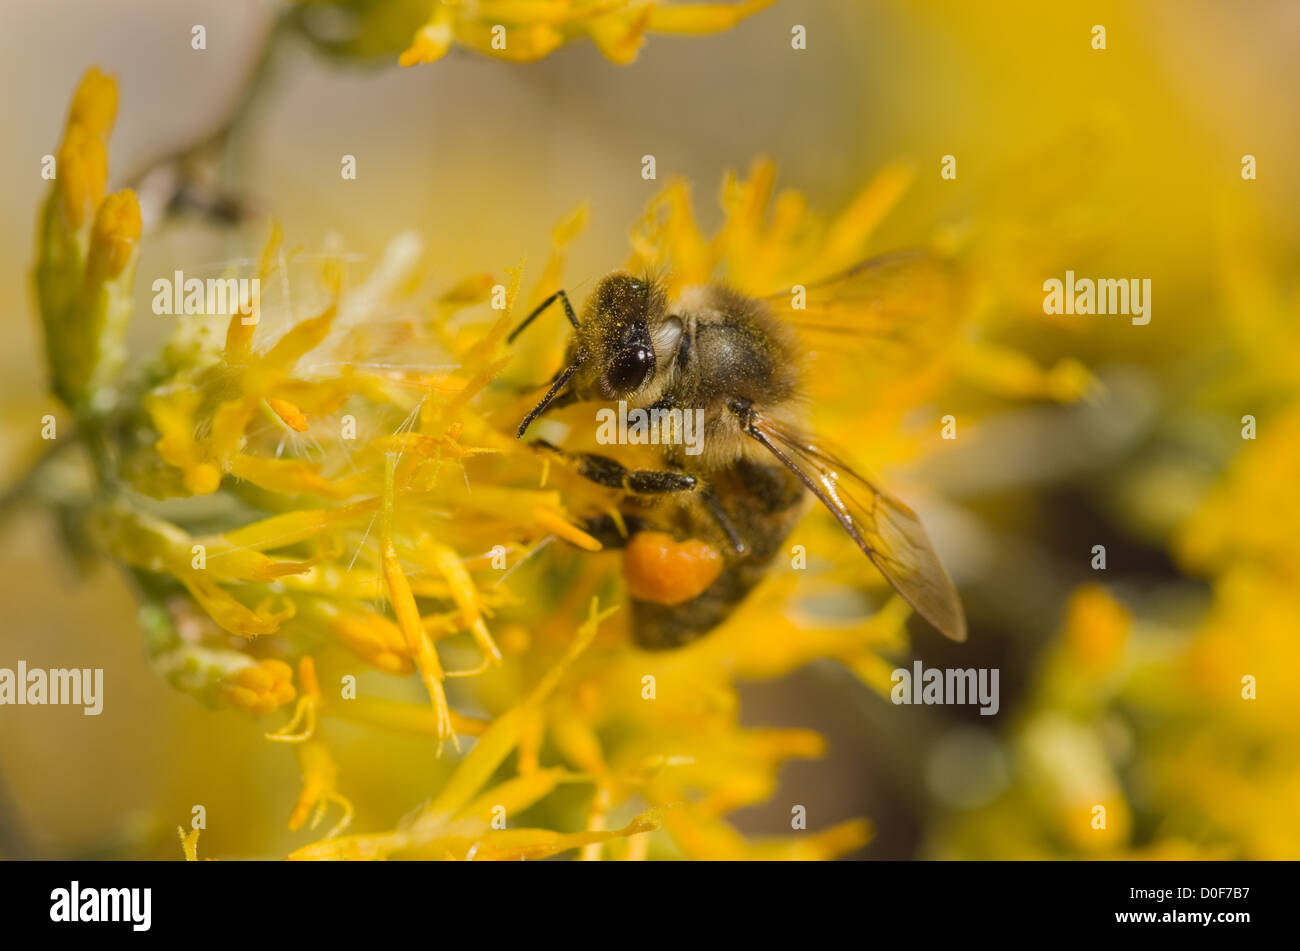 macro image of honey bee on yellow rabbitbrush flower - Stock Image